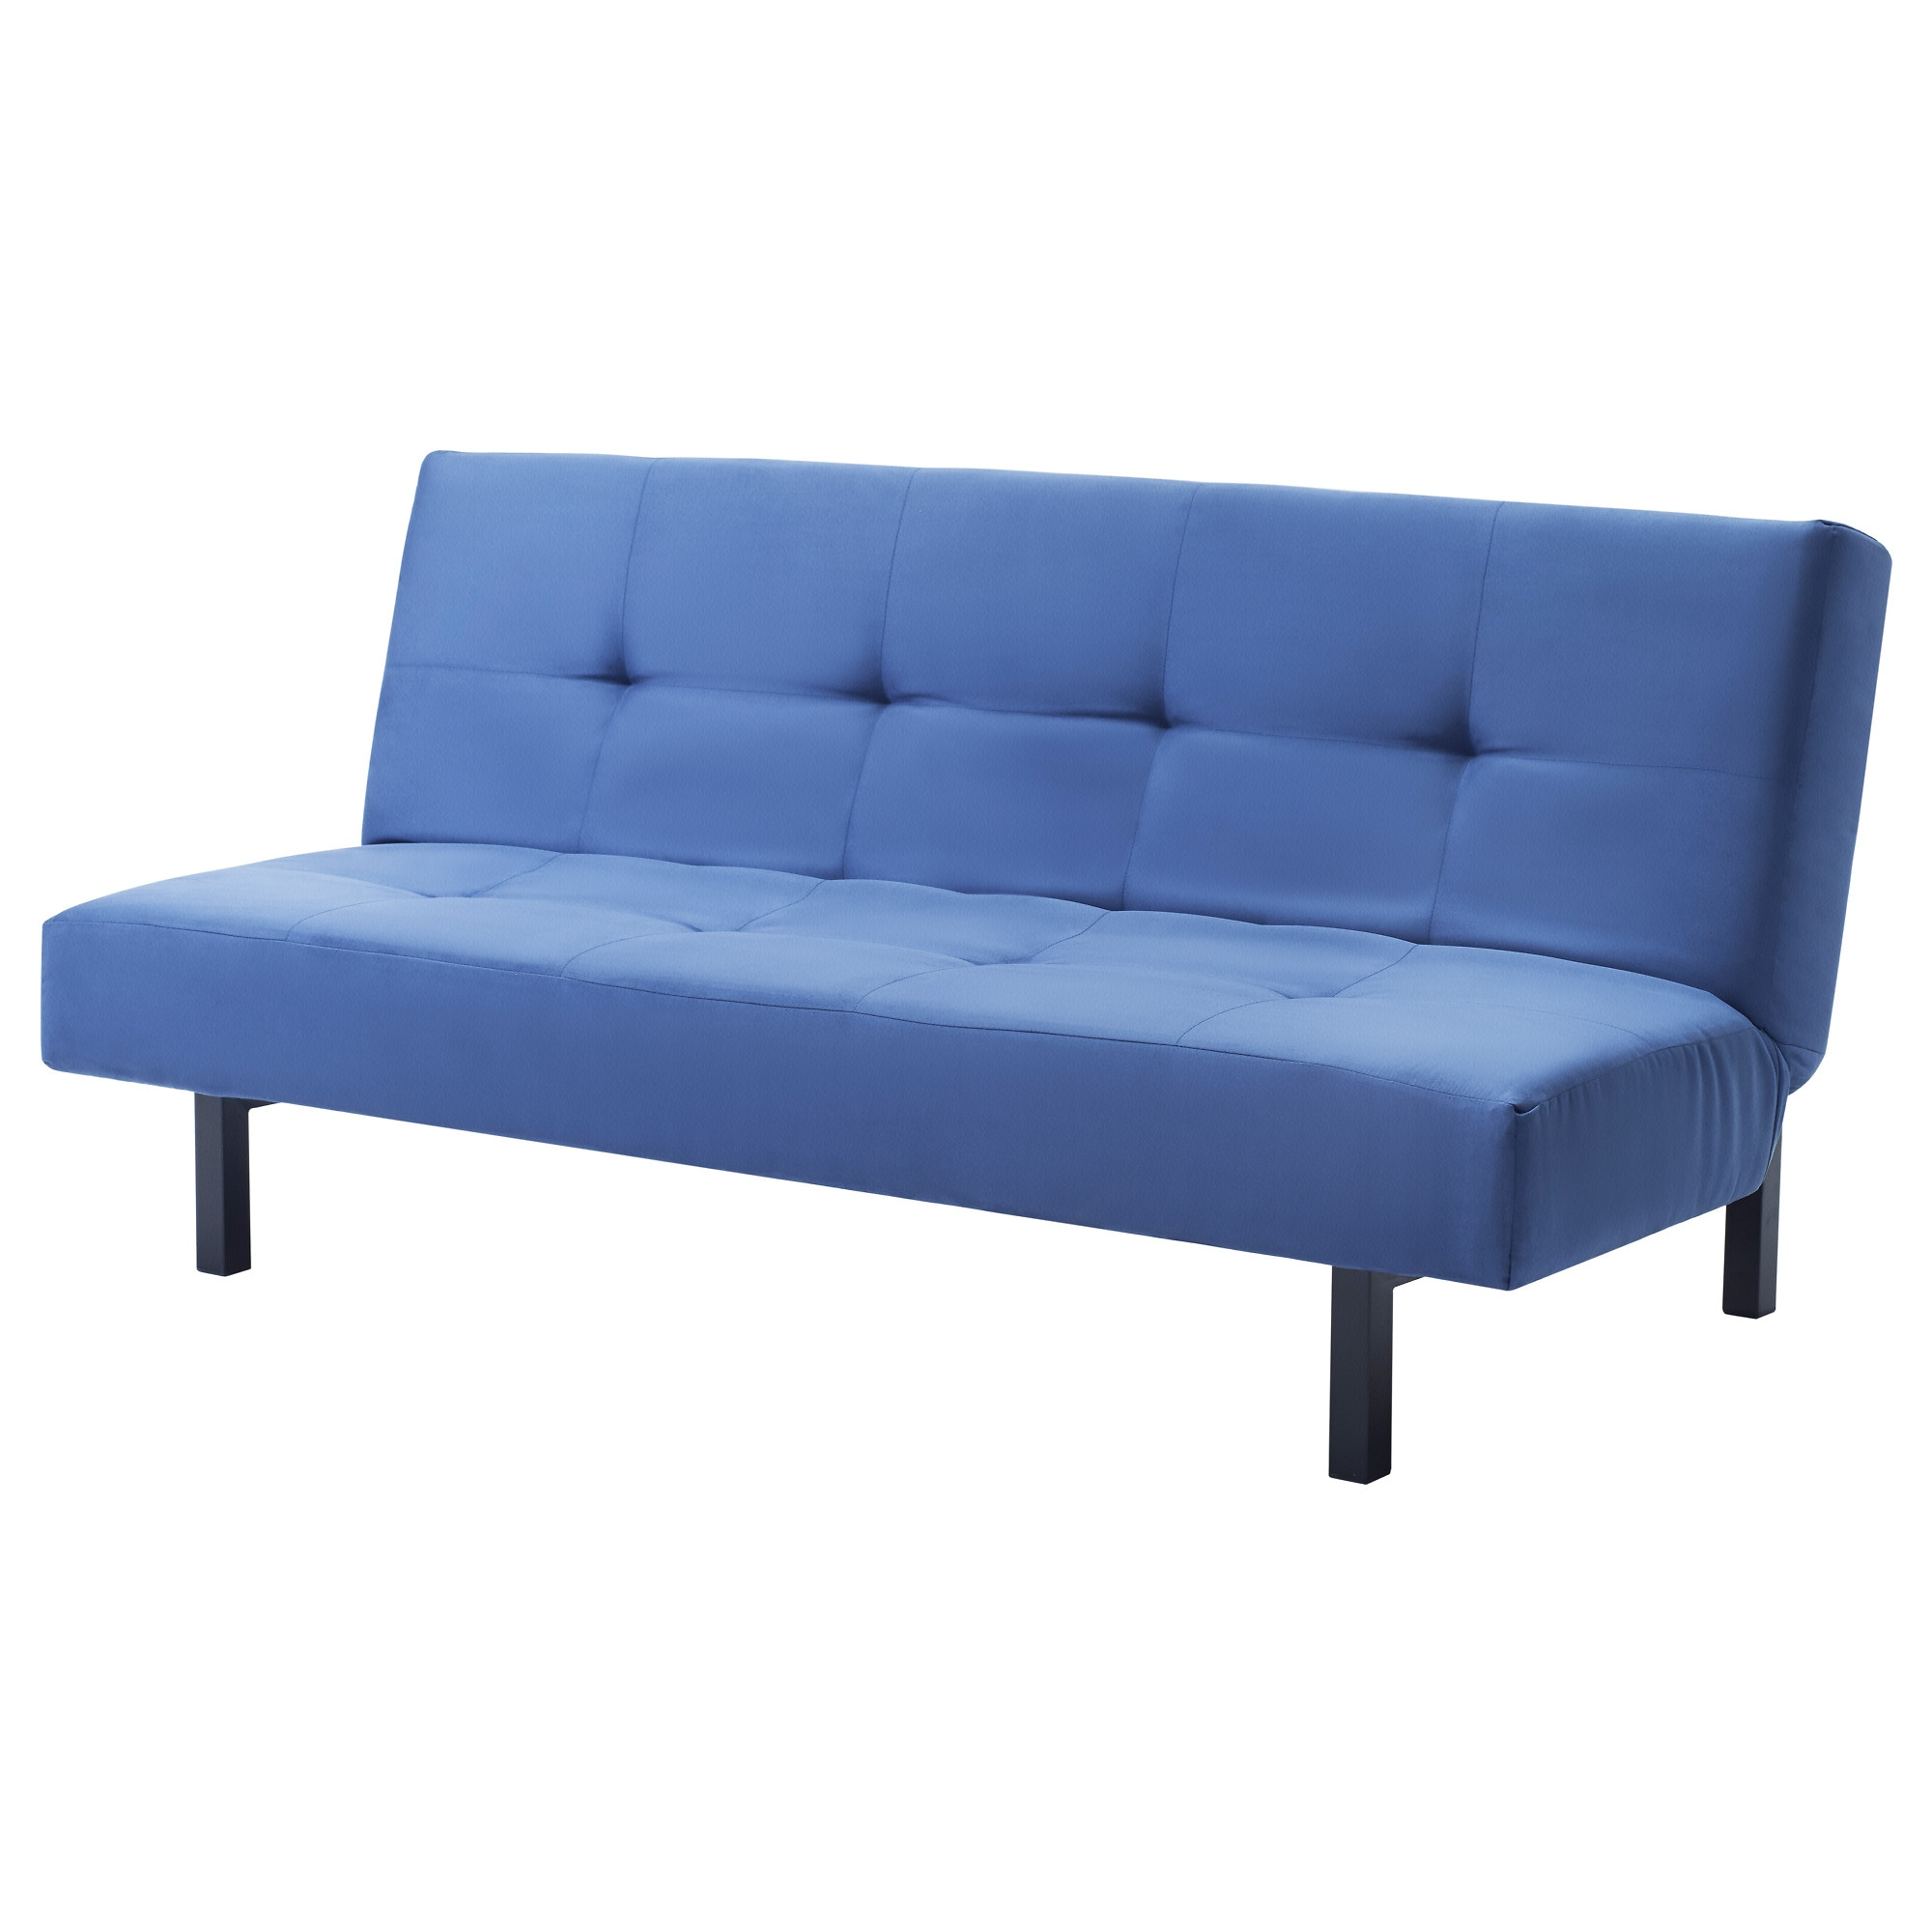 Balkarp Blue Sofa Bed Images